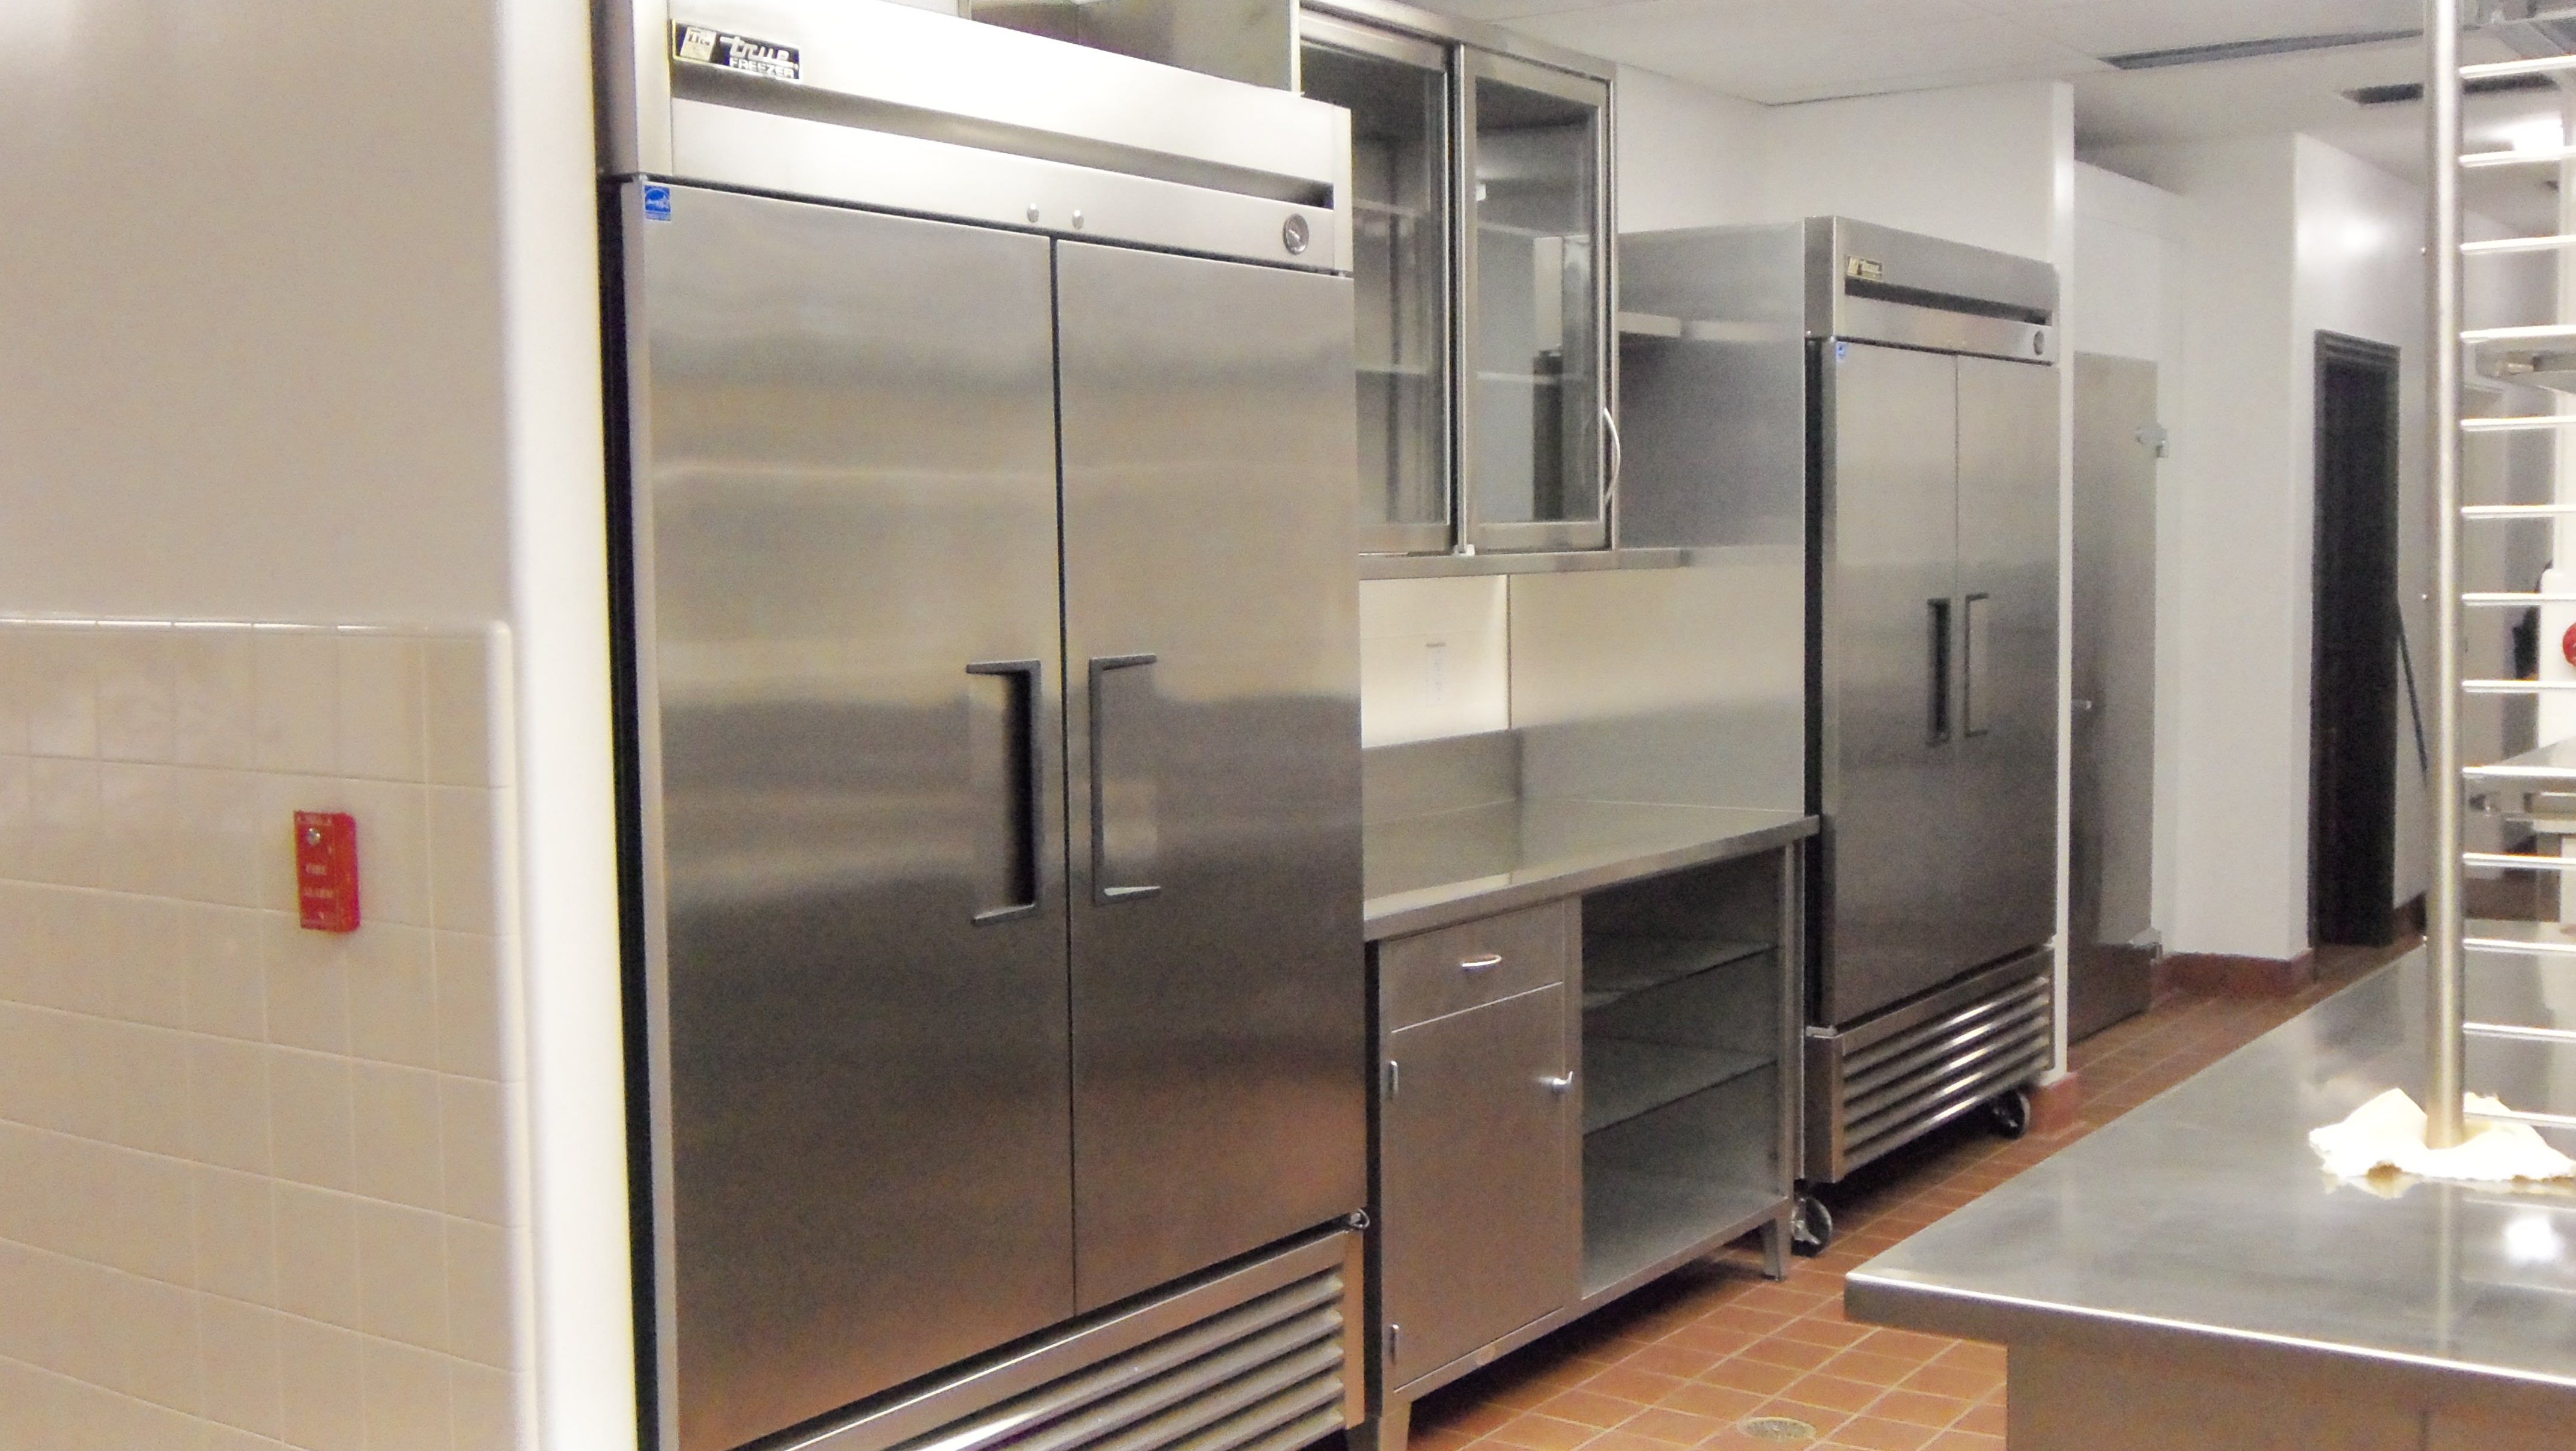 A Detailed Commercial Kitchen, Design, Plans /Code Requirements, Build